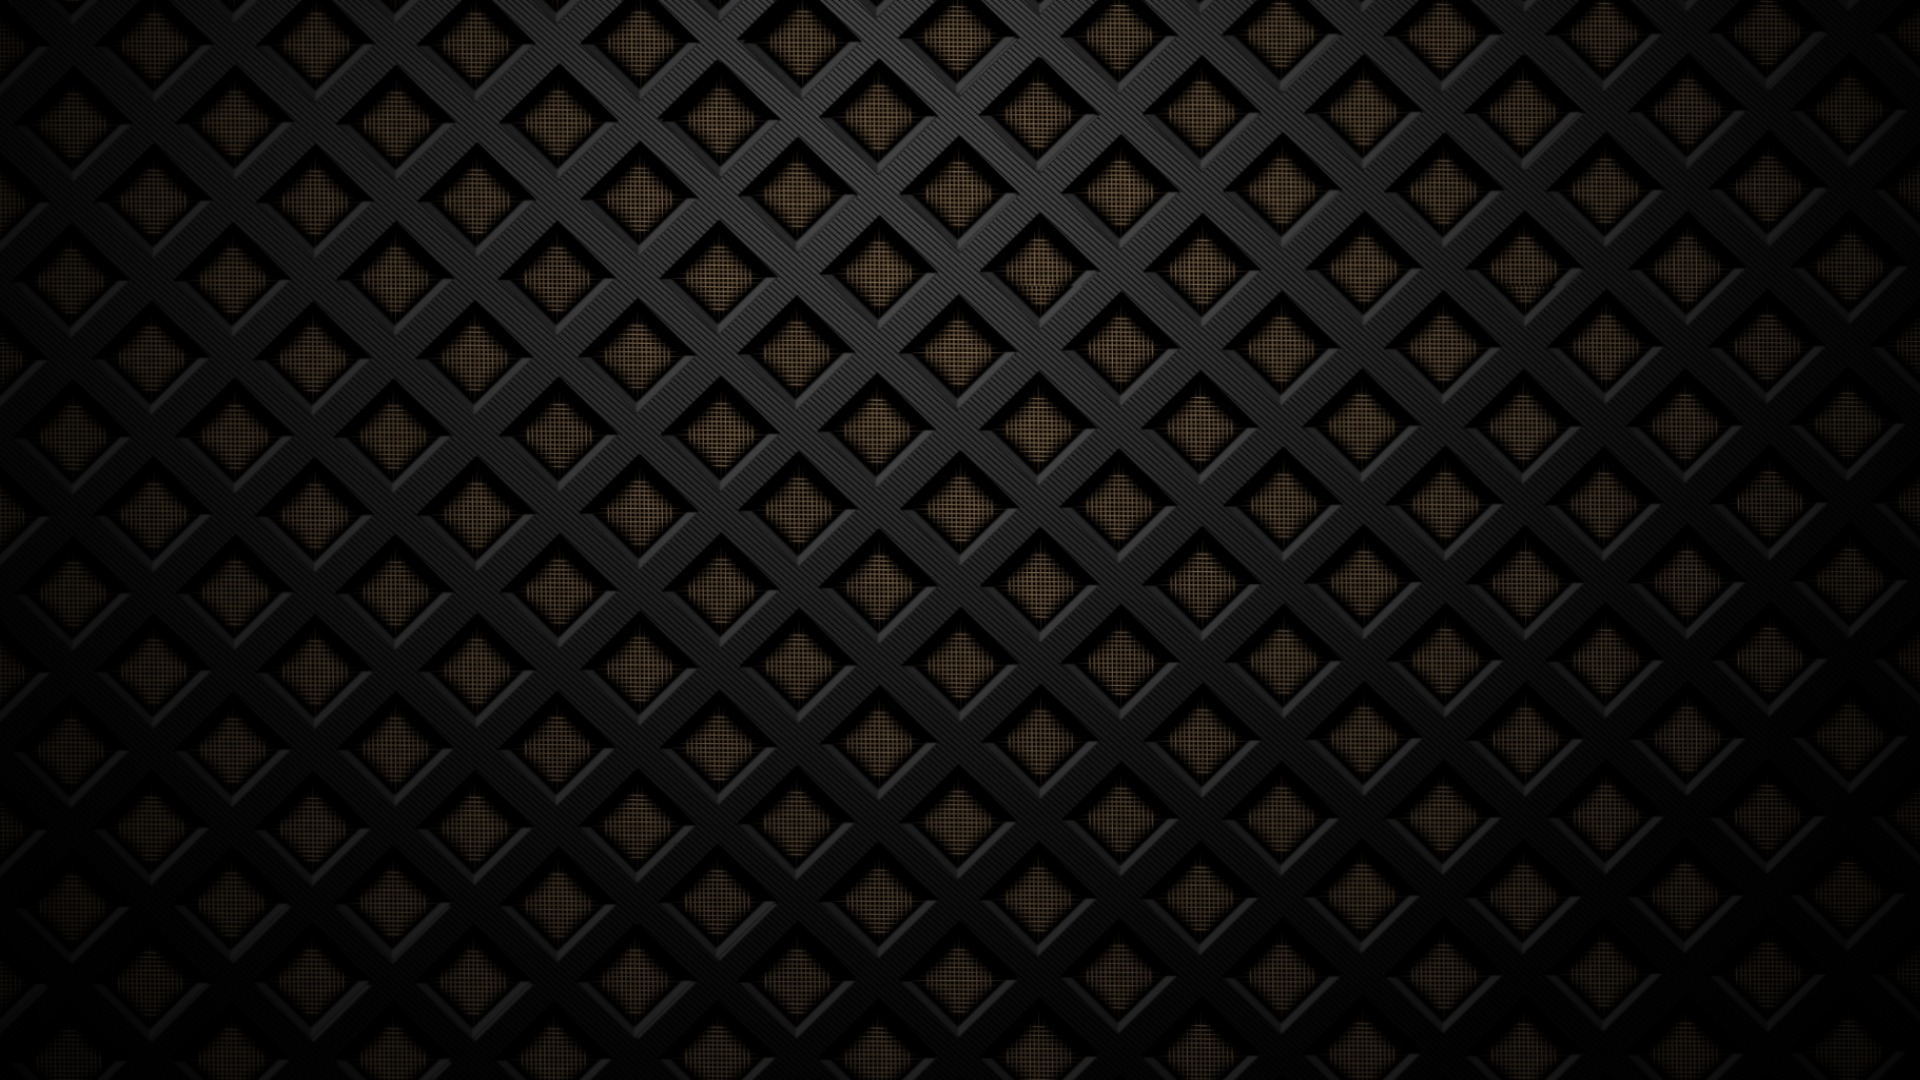 40 amazing hd black wallpapersbackgrounds for free download for Wallpaper for a